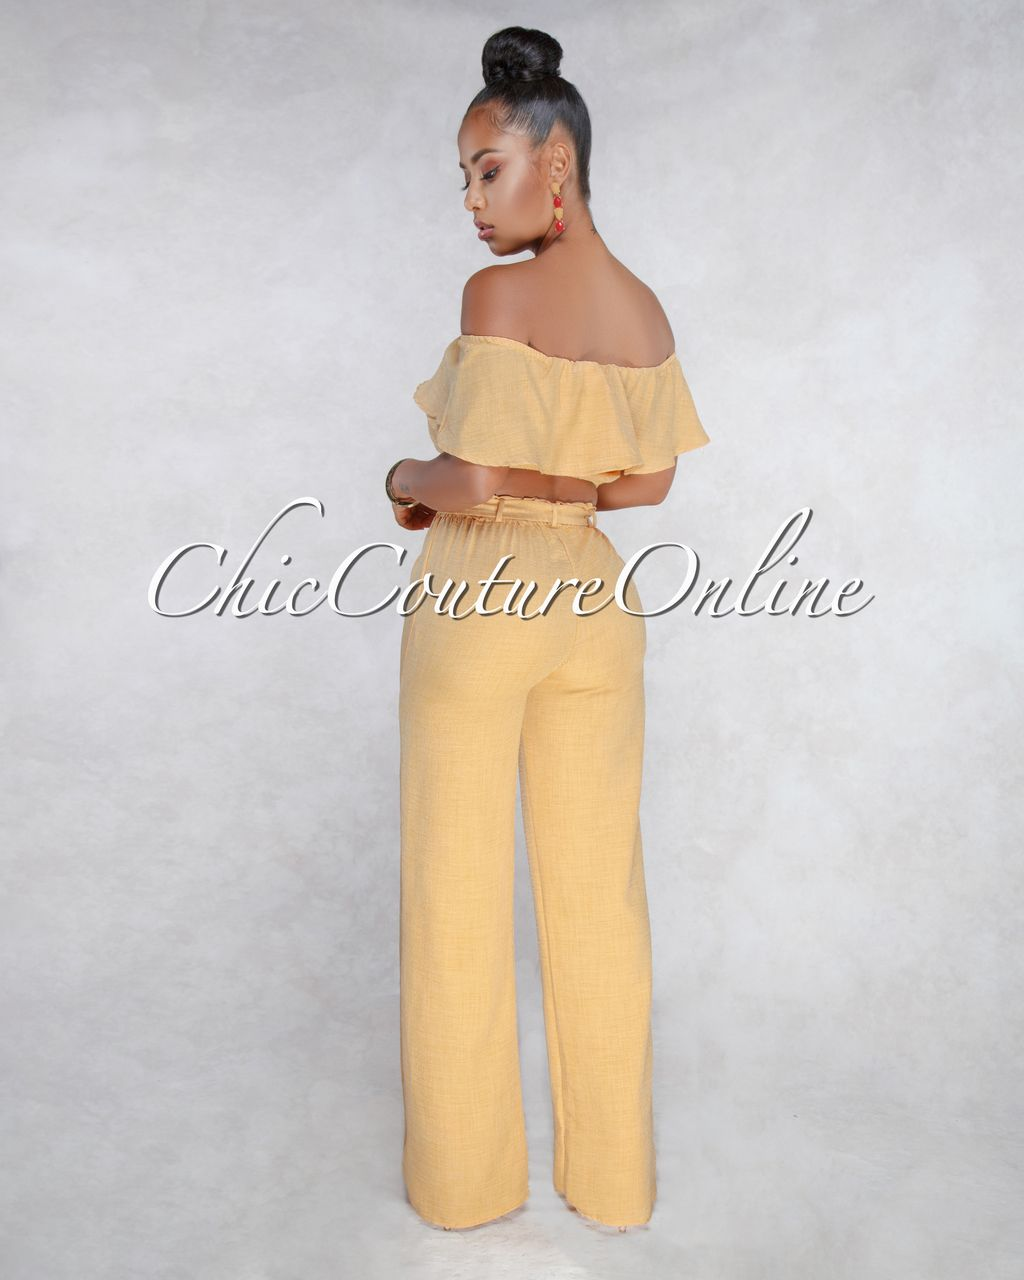 c5a678ffb5ae Chic Couture Online - Orion Mustard Yellow Crop Top Pants Two Piece Set